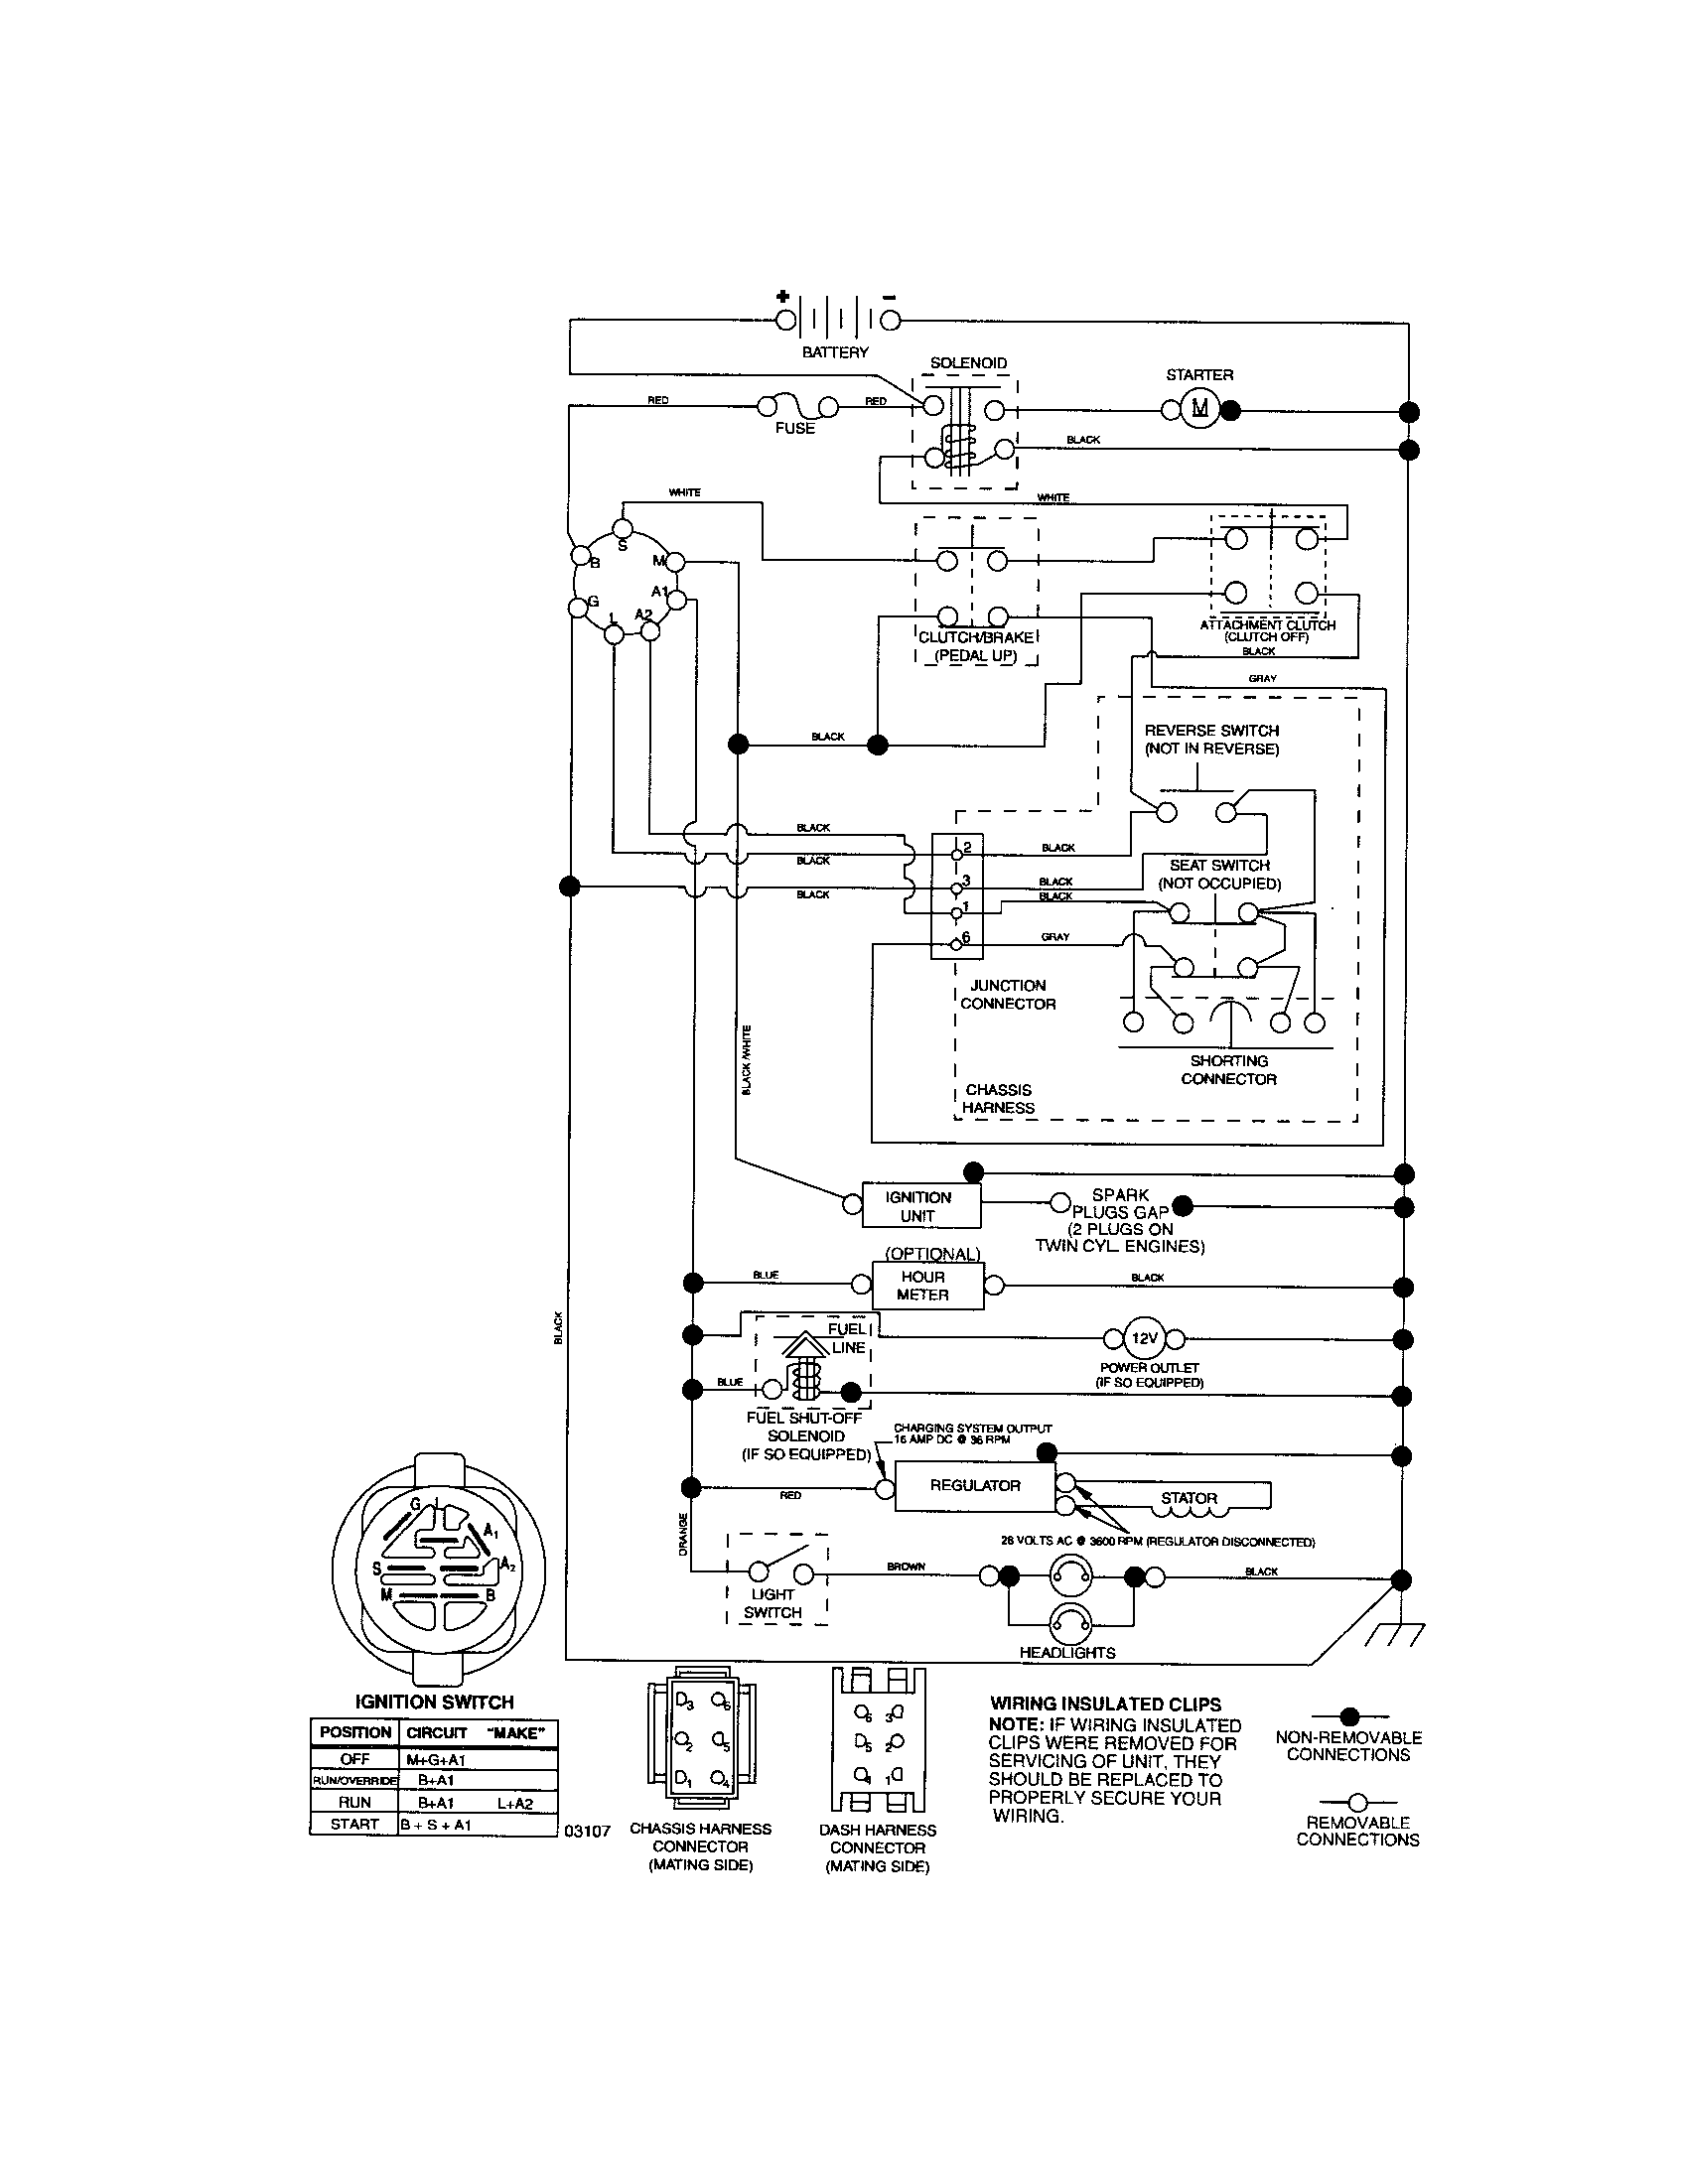 Wiring Diagrams For Tractors Great Design Of Diagram Tractor And Trailer Craftsman Riding Mower Electrical Rh Pinterest Com Amp Meter